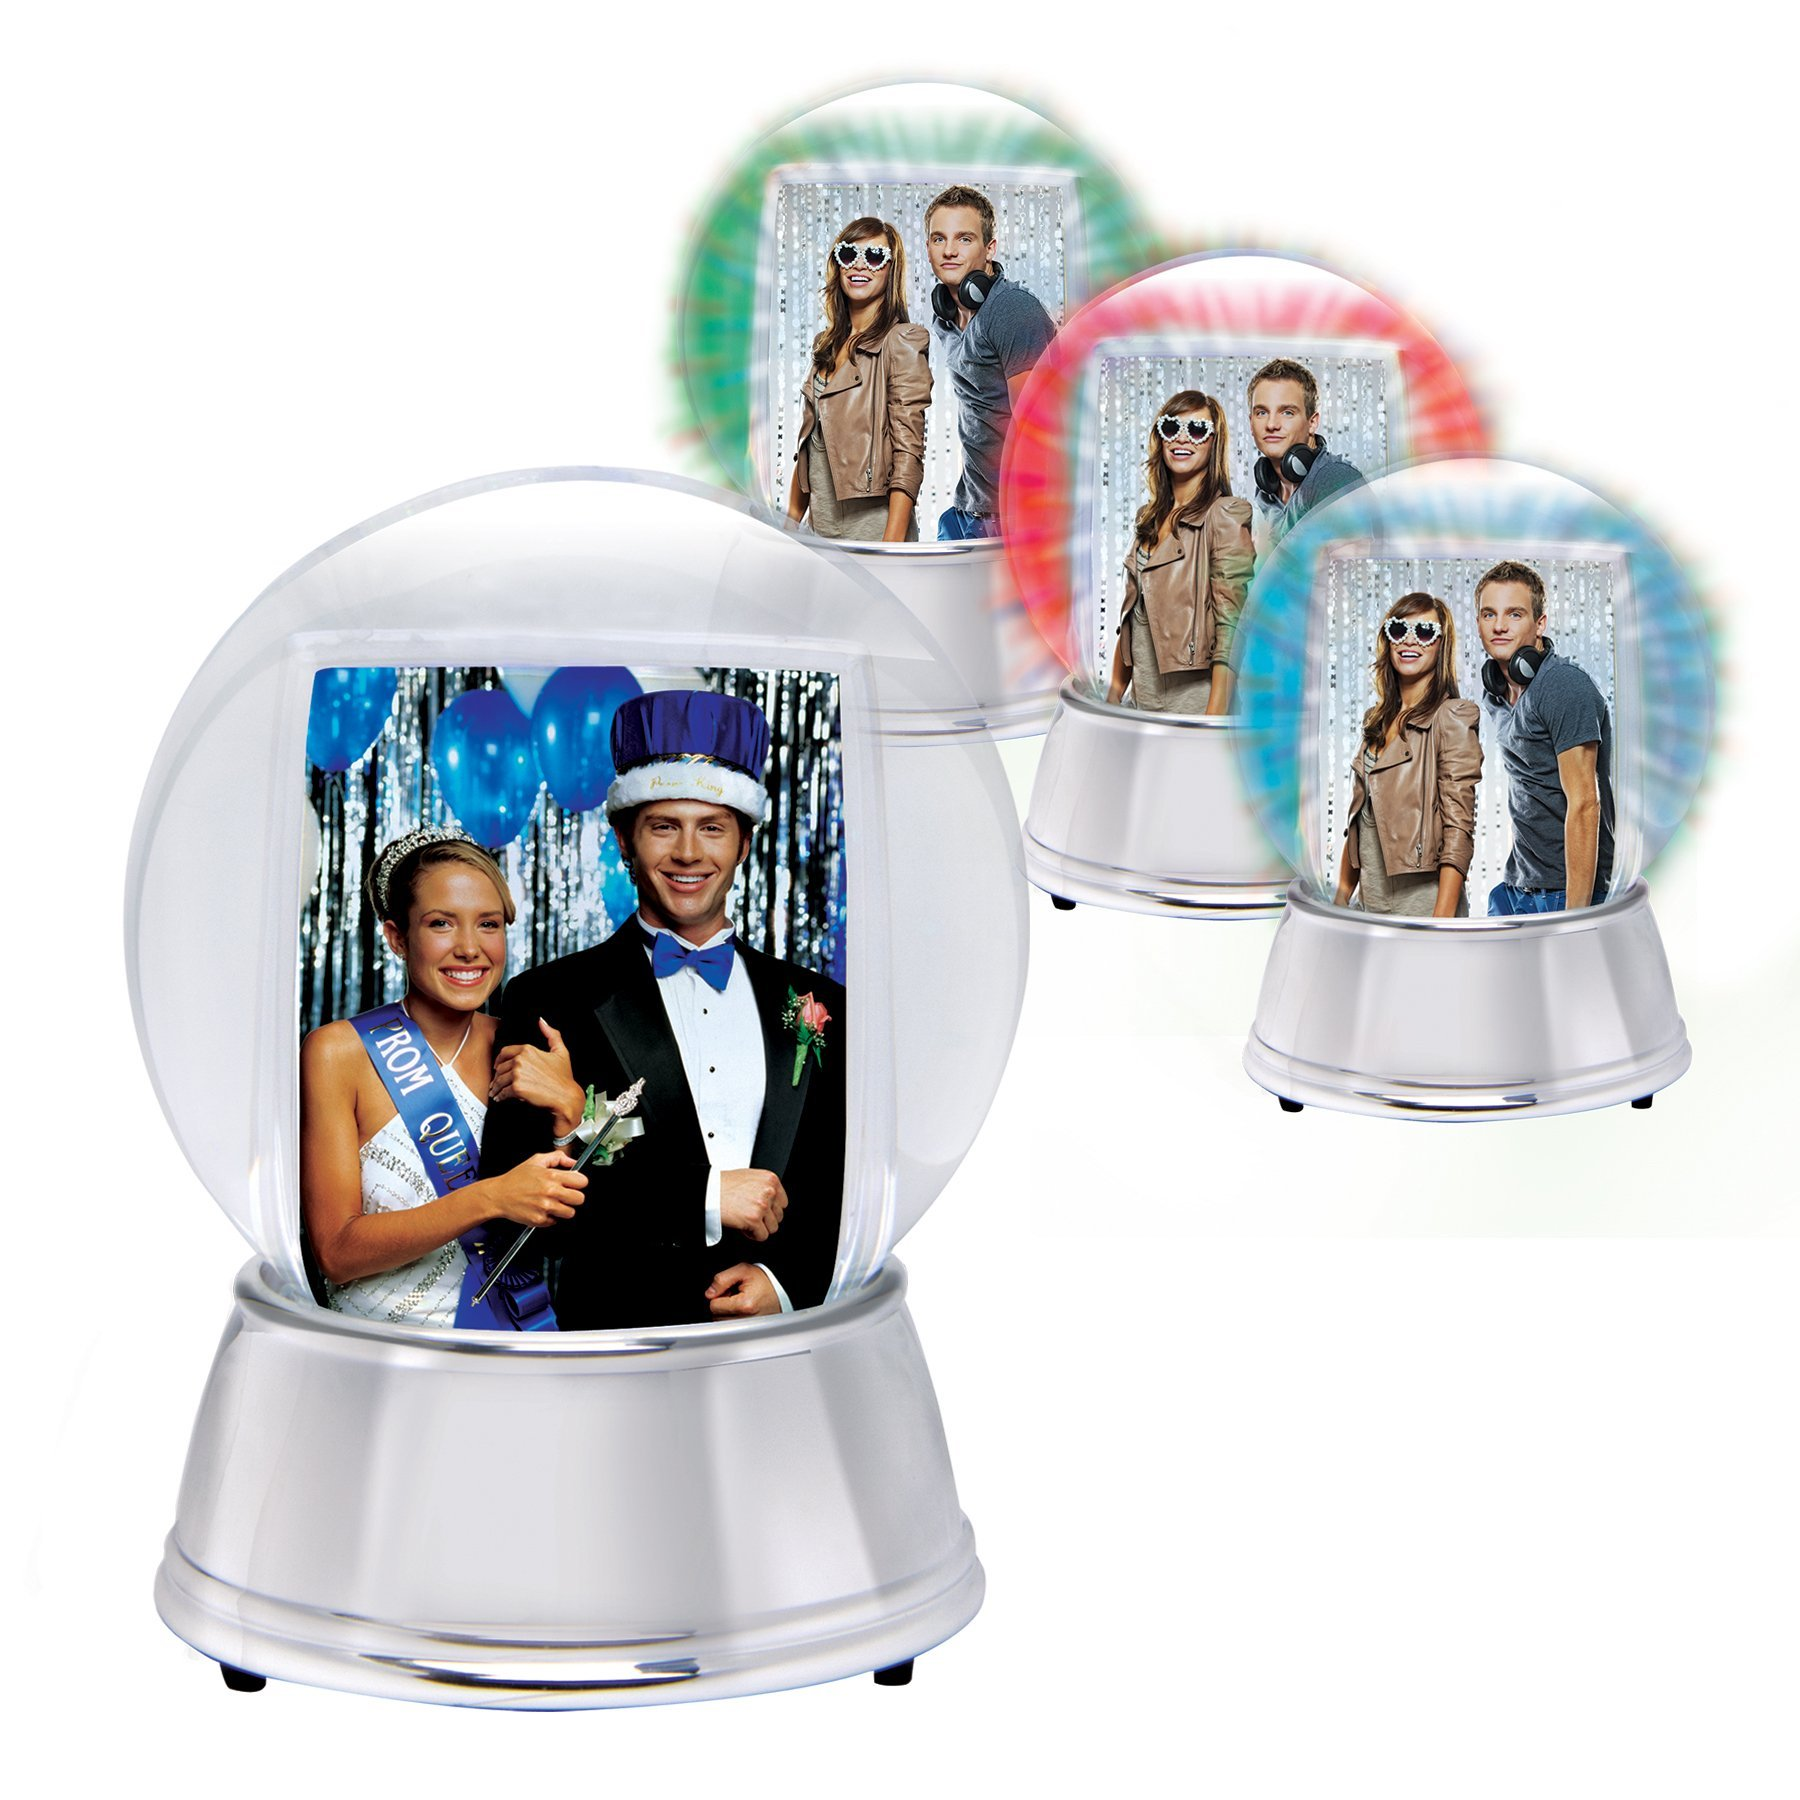 LIGHT UP Photo Snow Globe with Silver Base - Case of 12 by Neil Enterprises